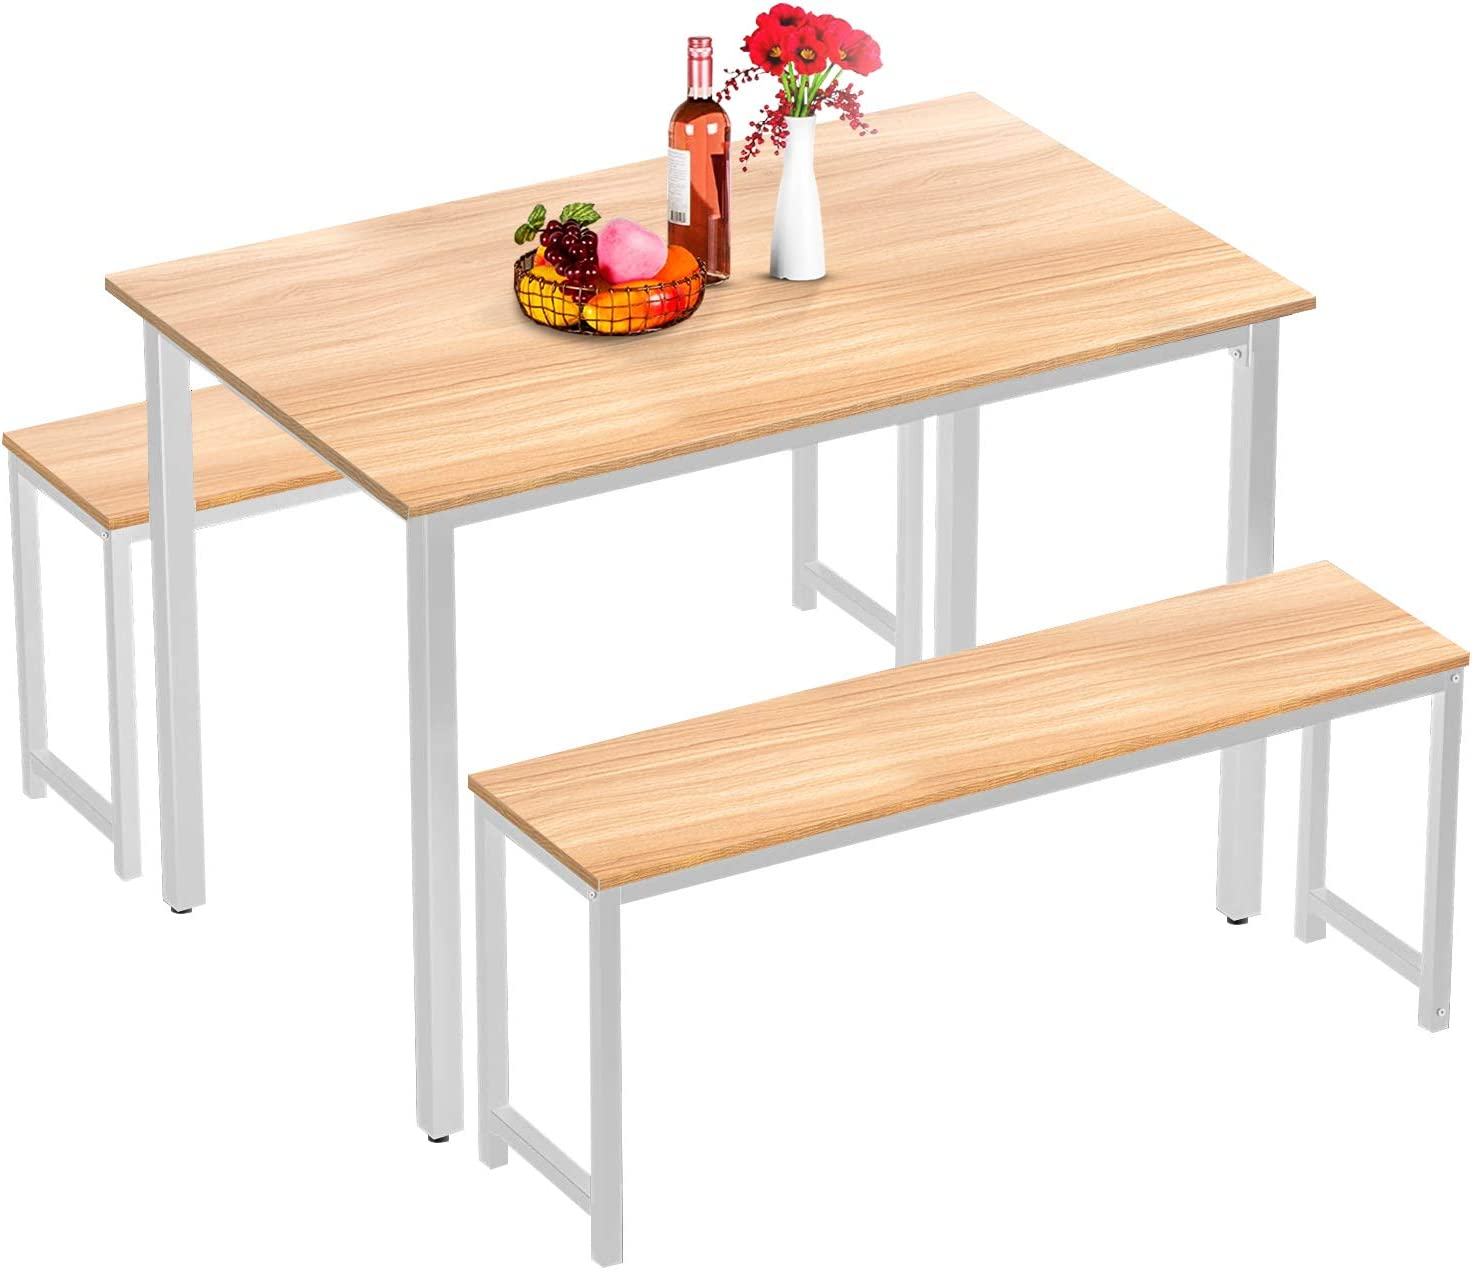 Amazon Com Dklgg 3 Pieces Dining Table Set Modern Kitchen Table And 2 Bench With Metal Leg For Small Space Home Beige Office Products